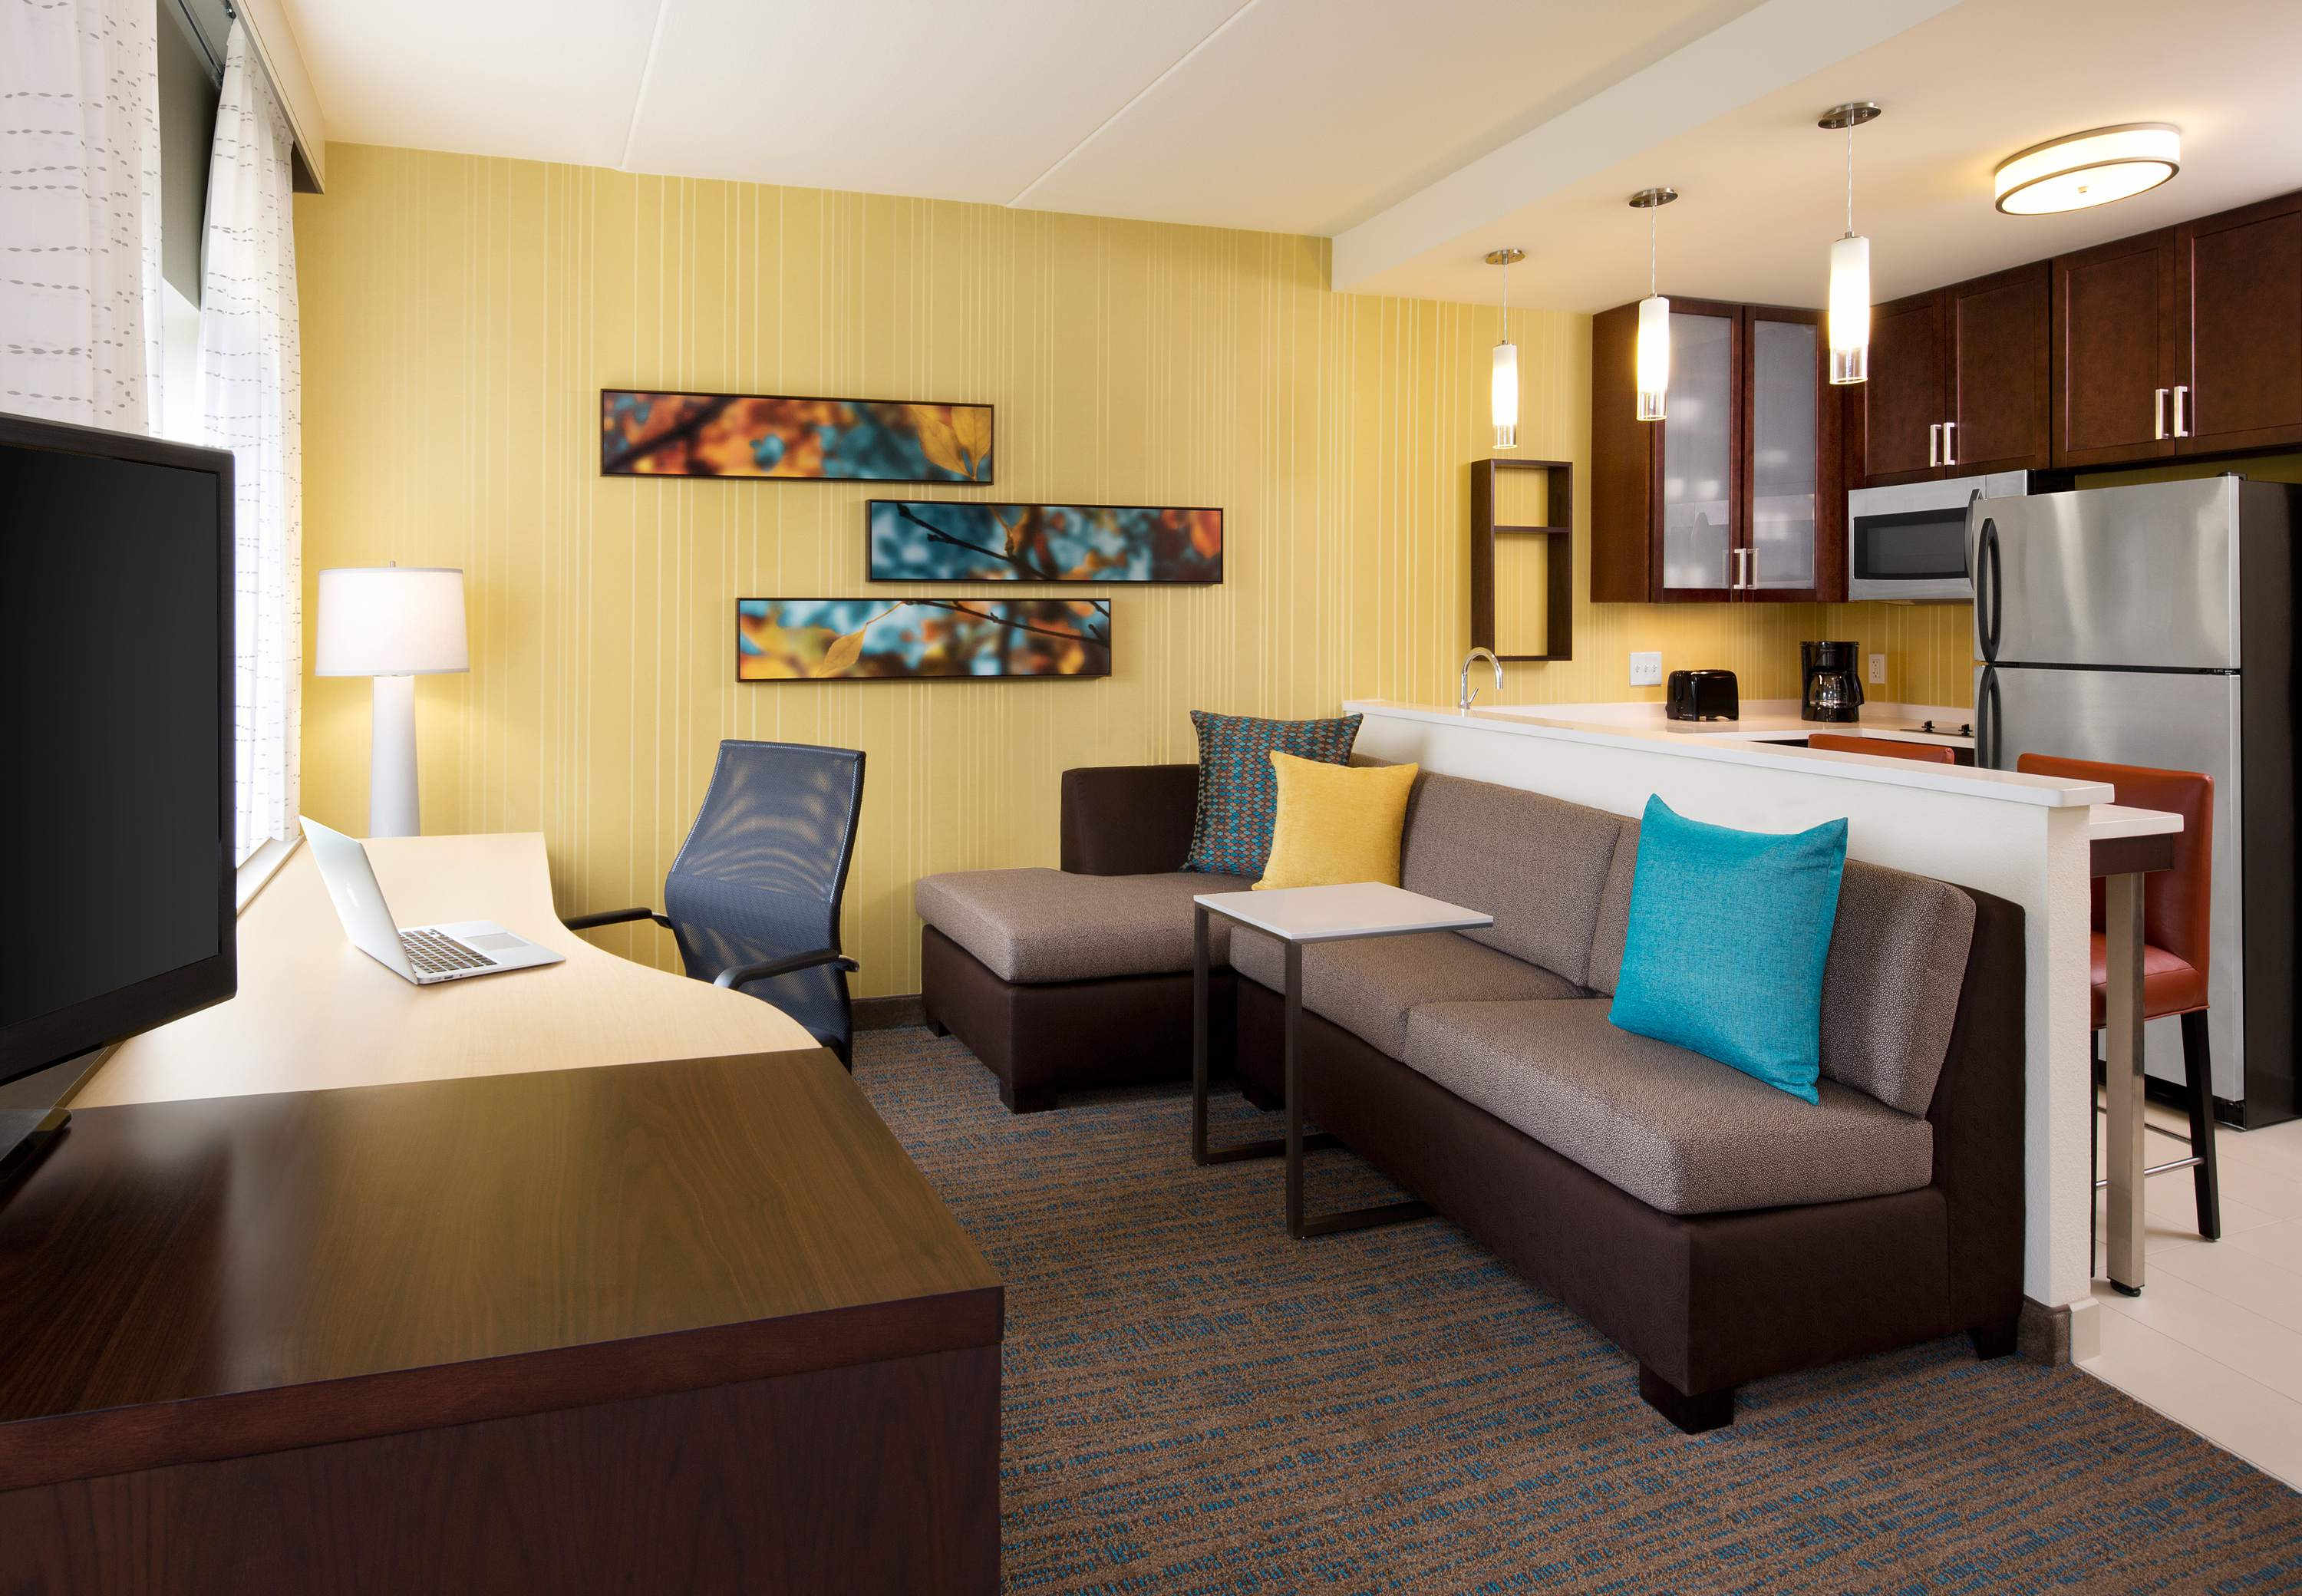 Residence Inn by Marriott Miami Airport West/Doral image 0